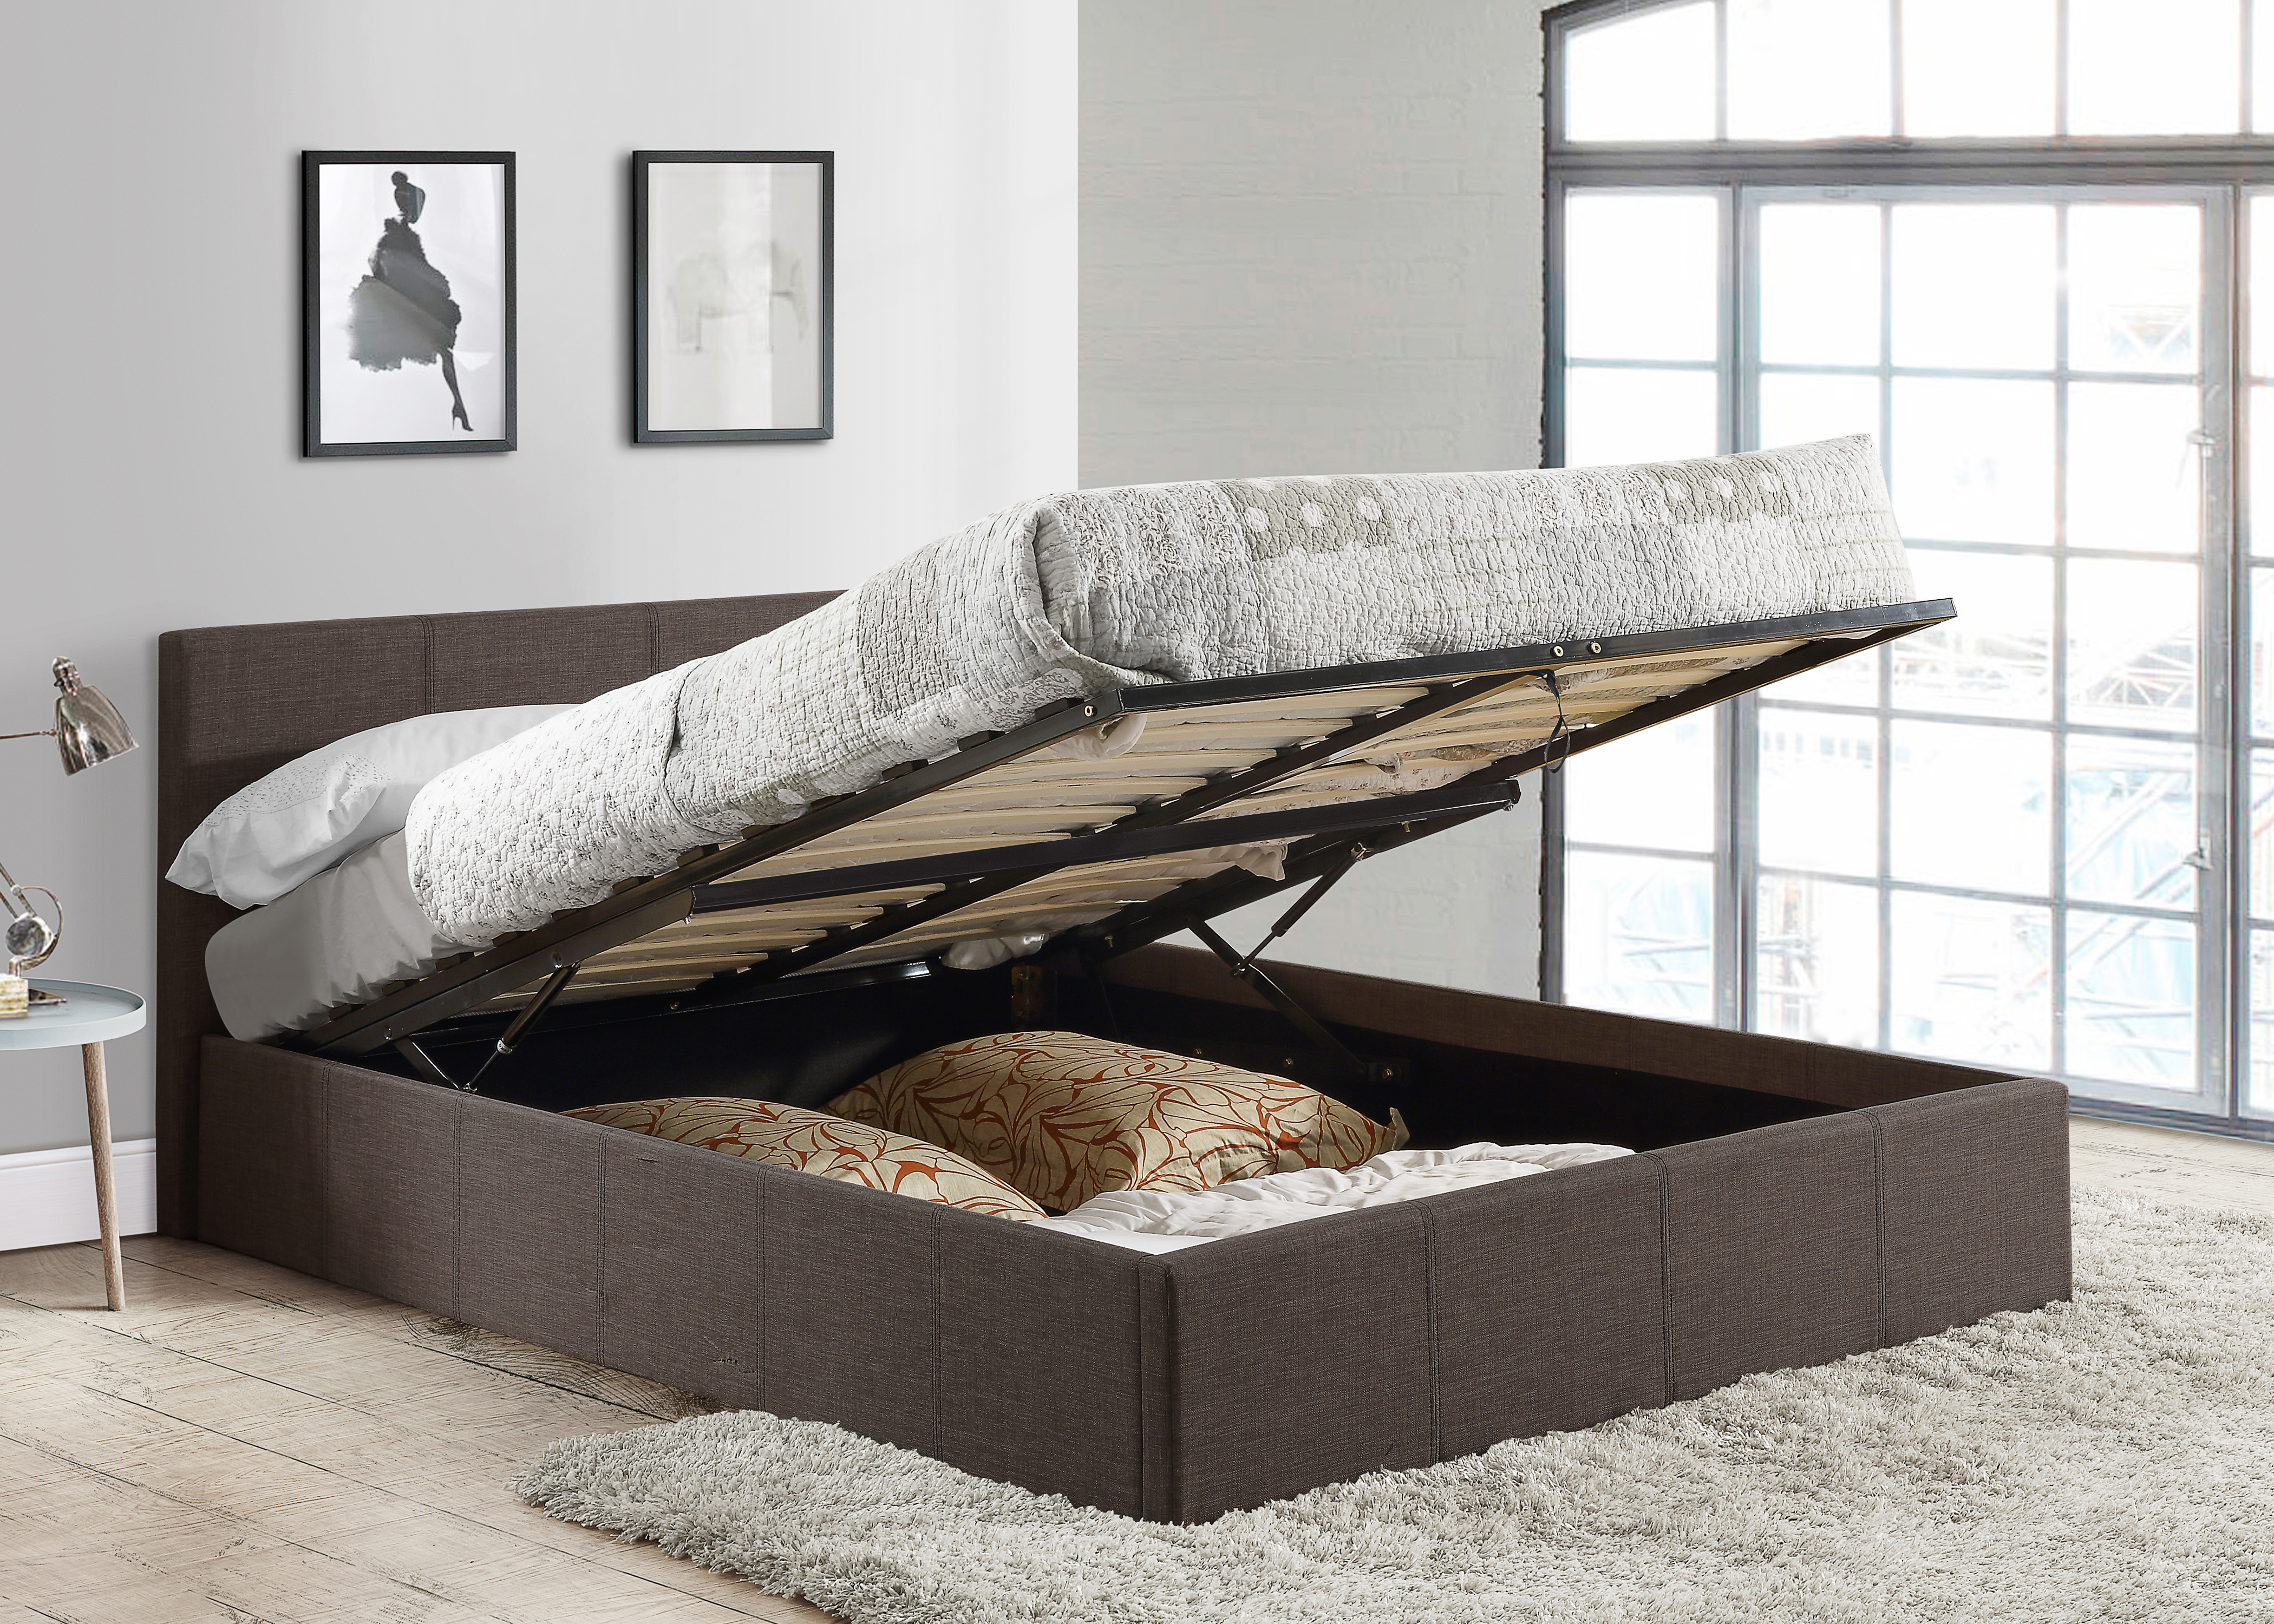 b0f0a19971f1 Birlea Ottoman Storage Bed - Grey Fabric - Gas Lift Up - 3ft, 4ft, 4ft6, 5ft